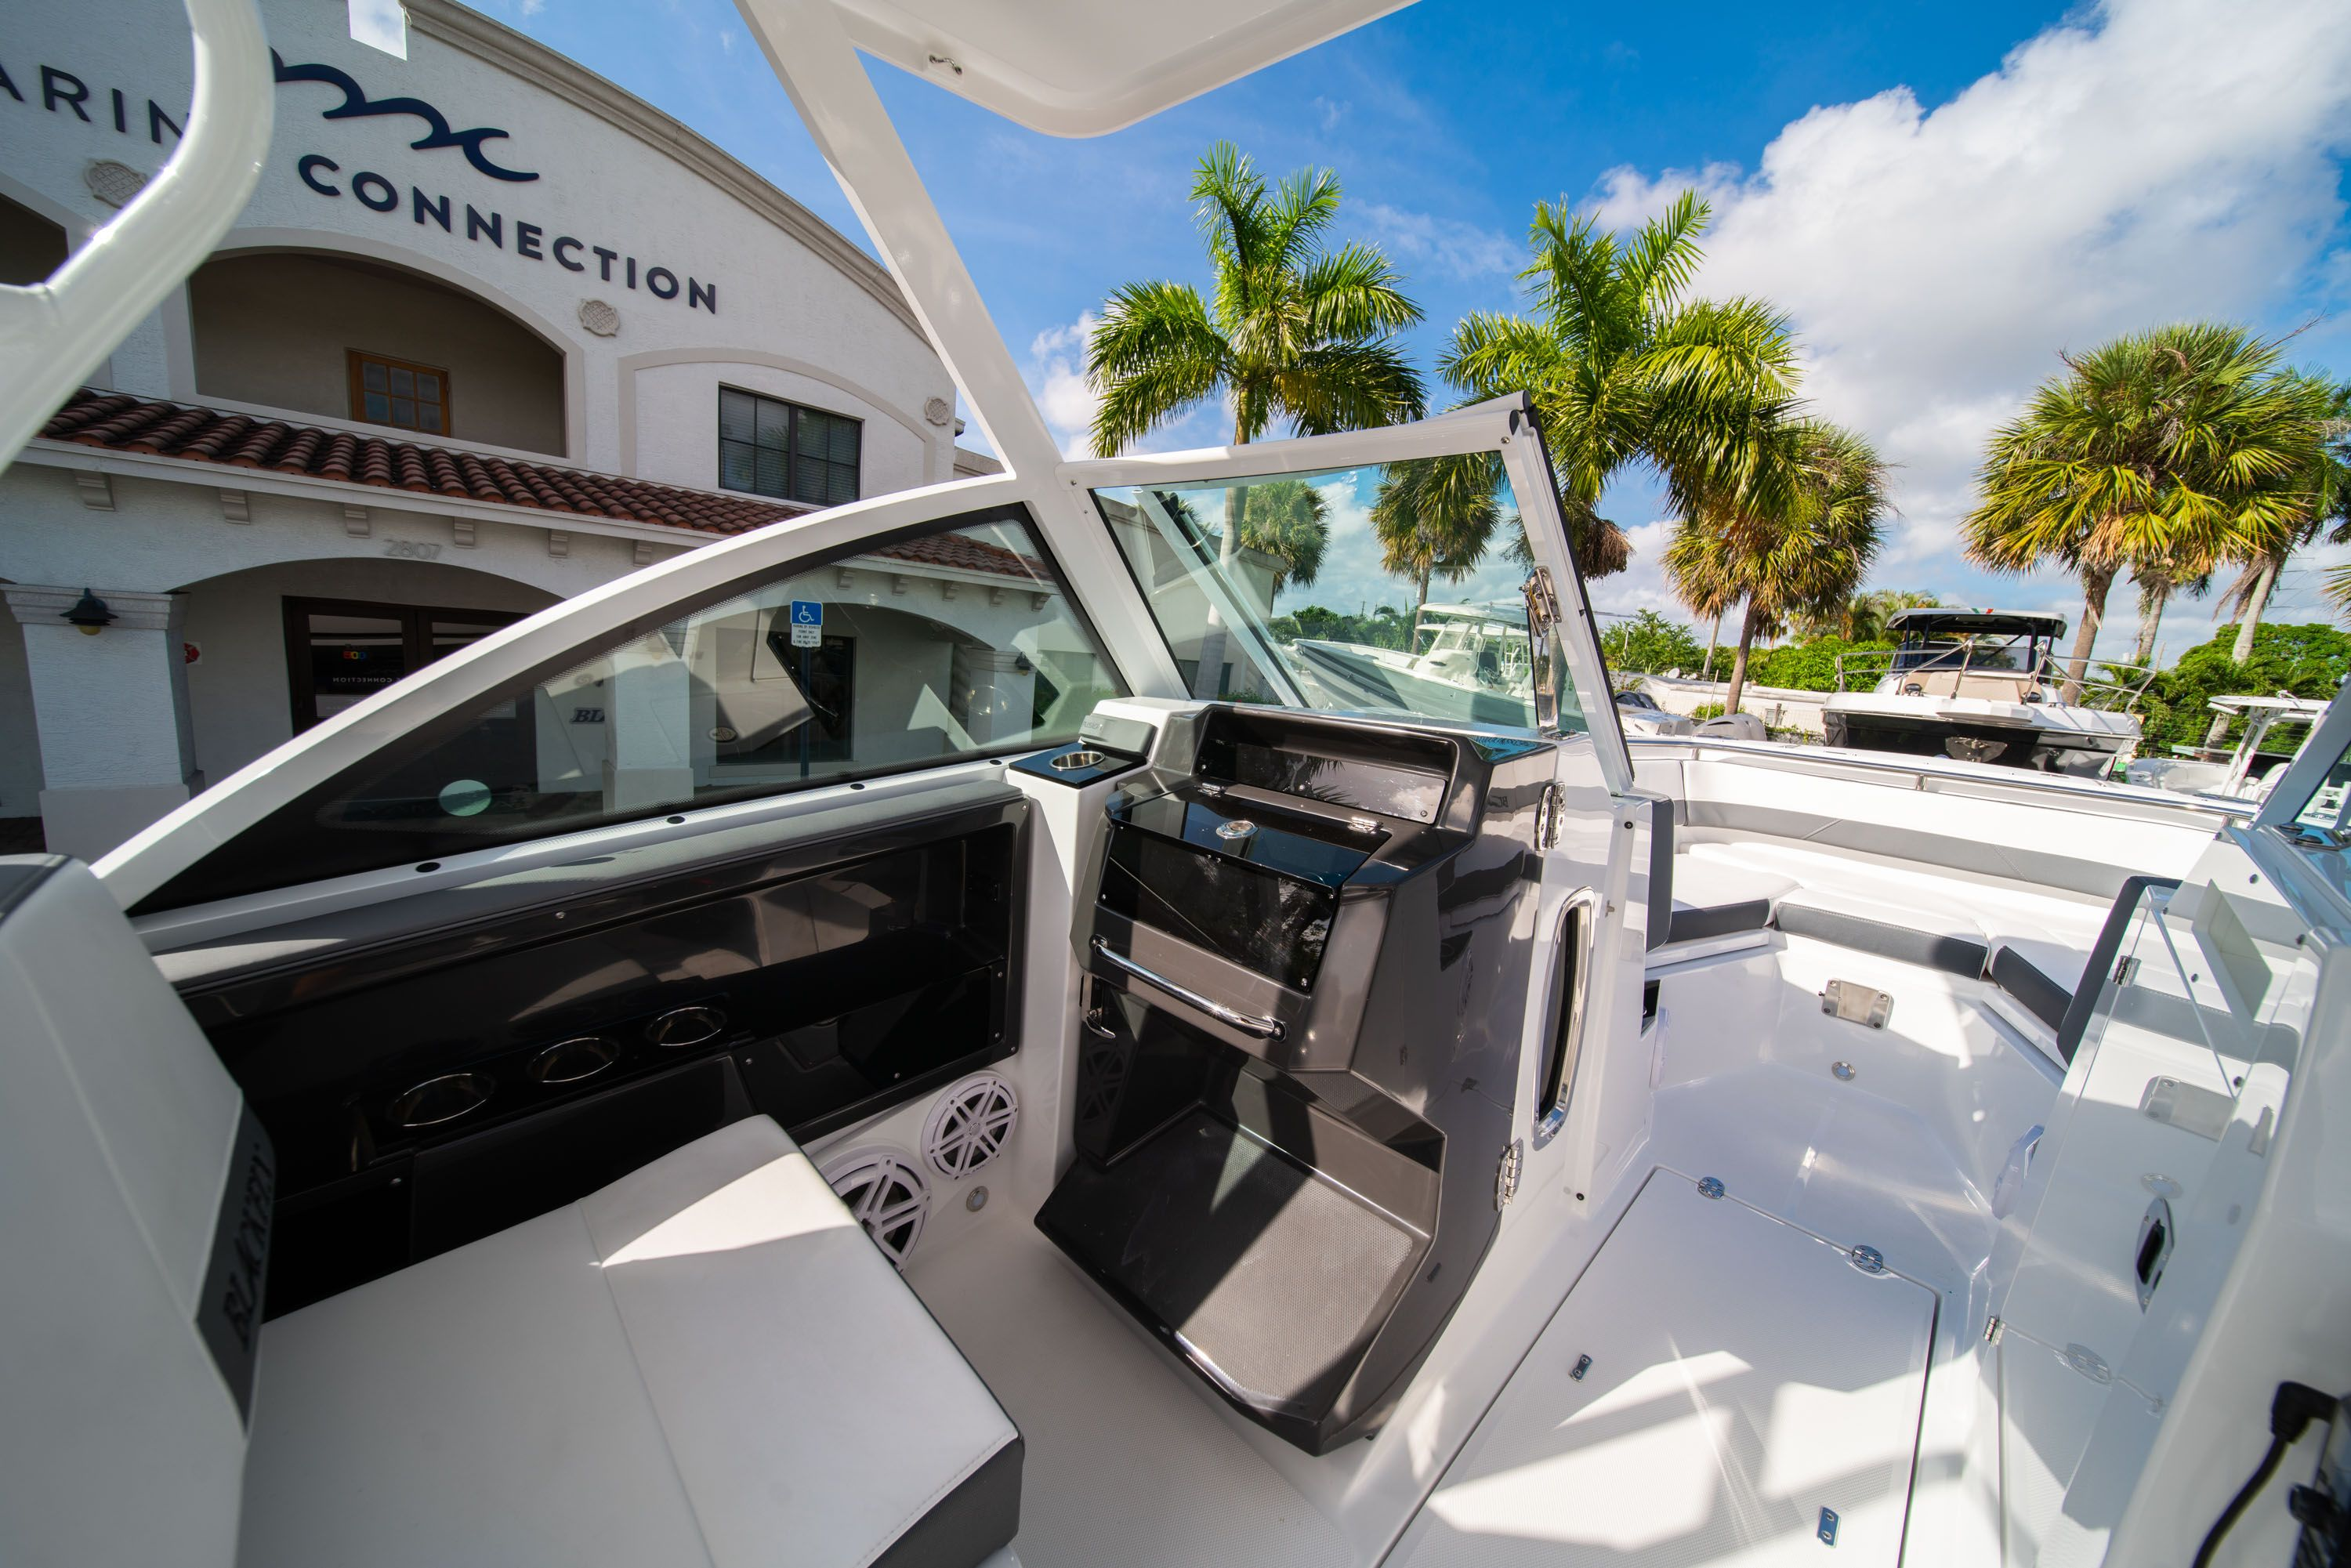 Thumbnail 37 for New 2020 Blackfin 242DC Dual Console boat for sale in West Palm Beach, FL